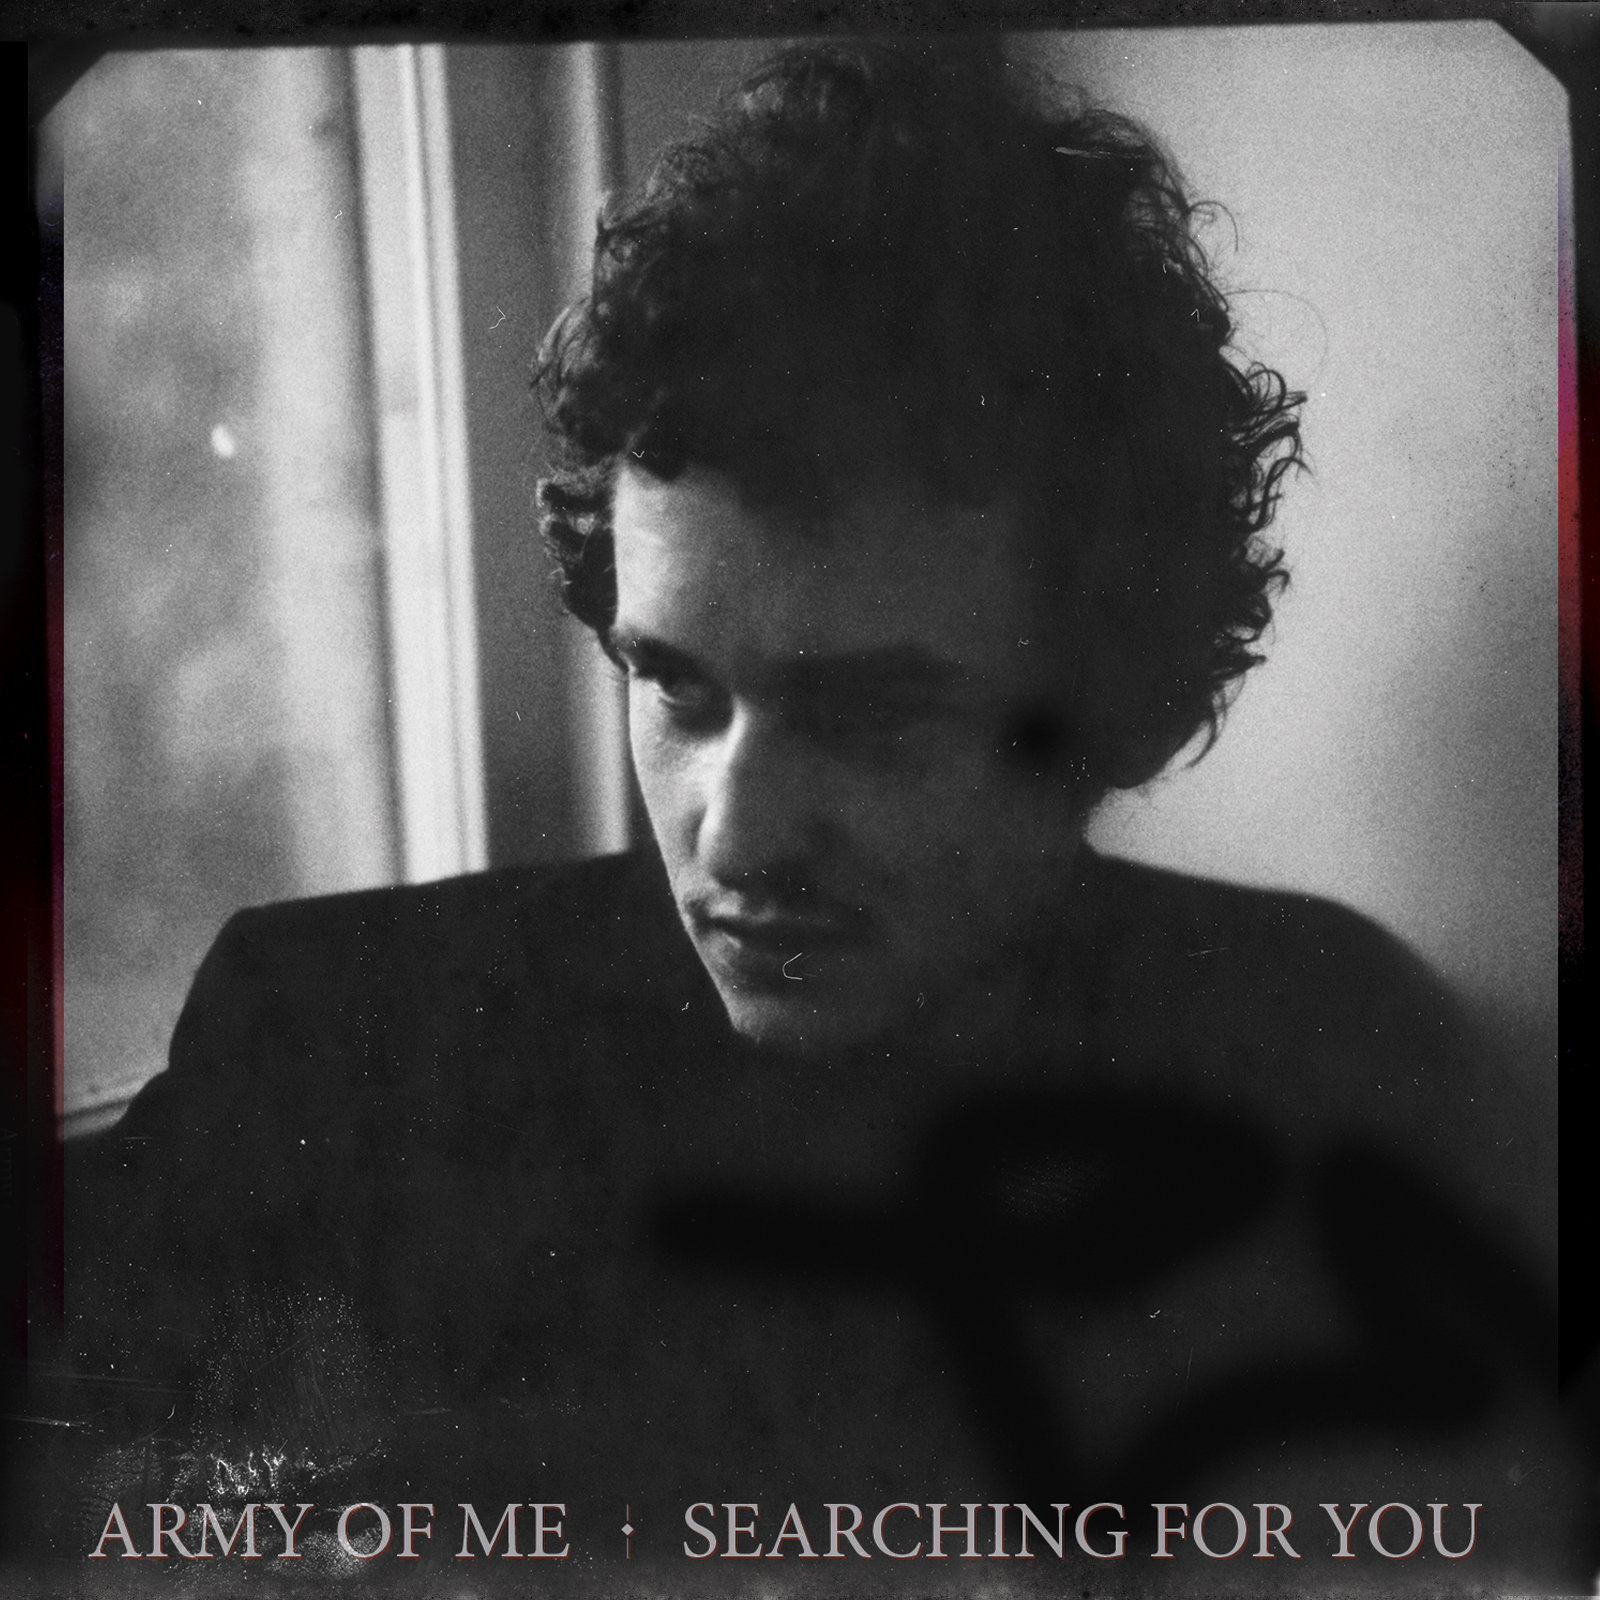 army of me cover album